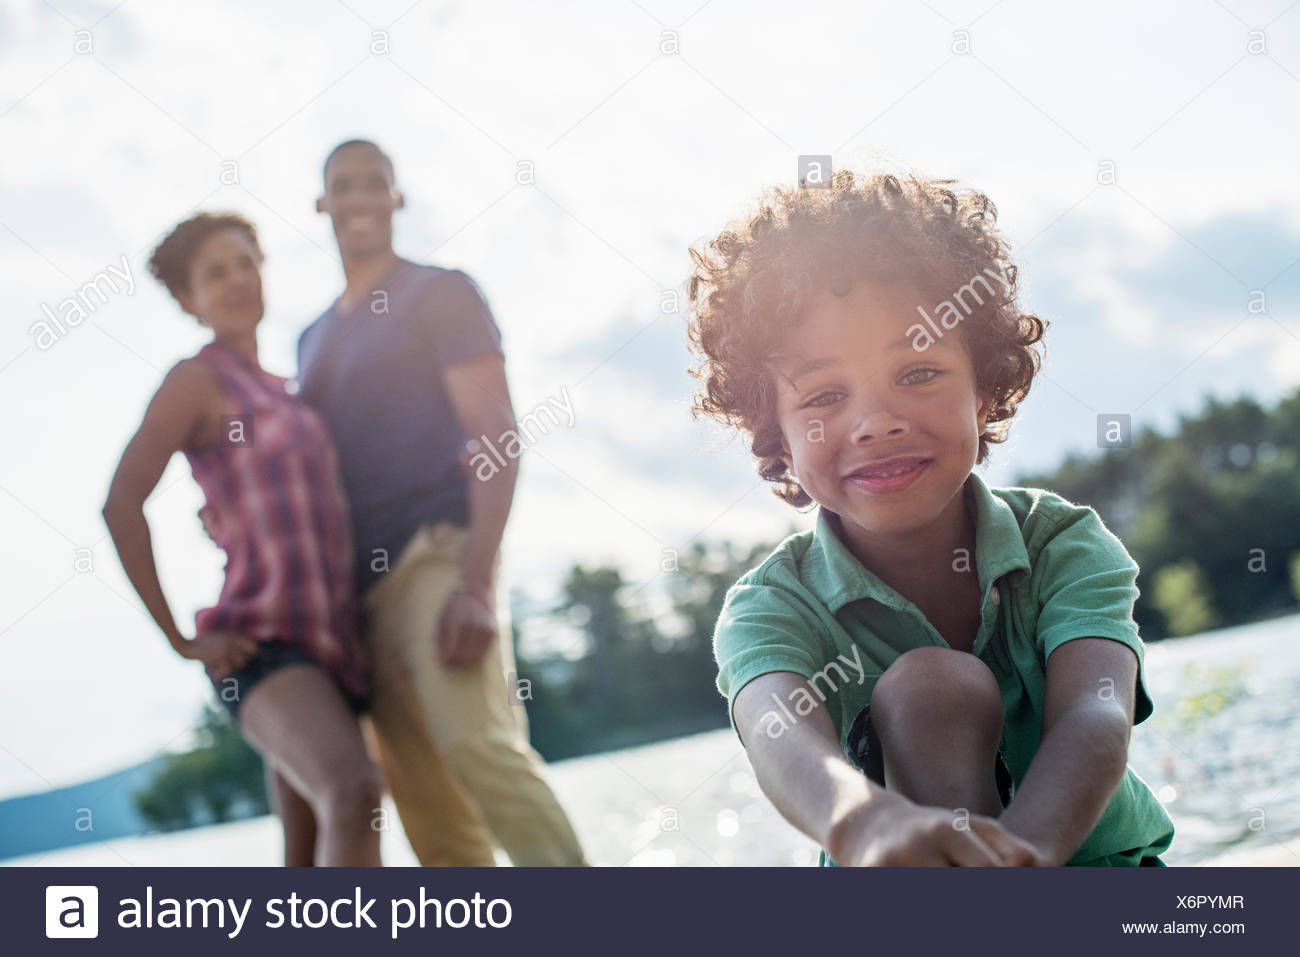 A family, parents and son by a lake in summer. Stock Photo